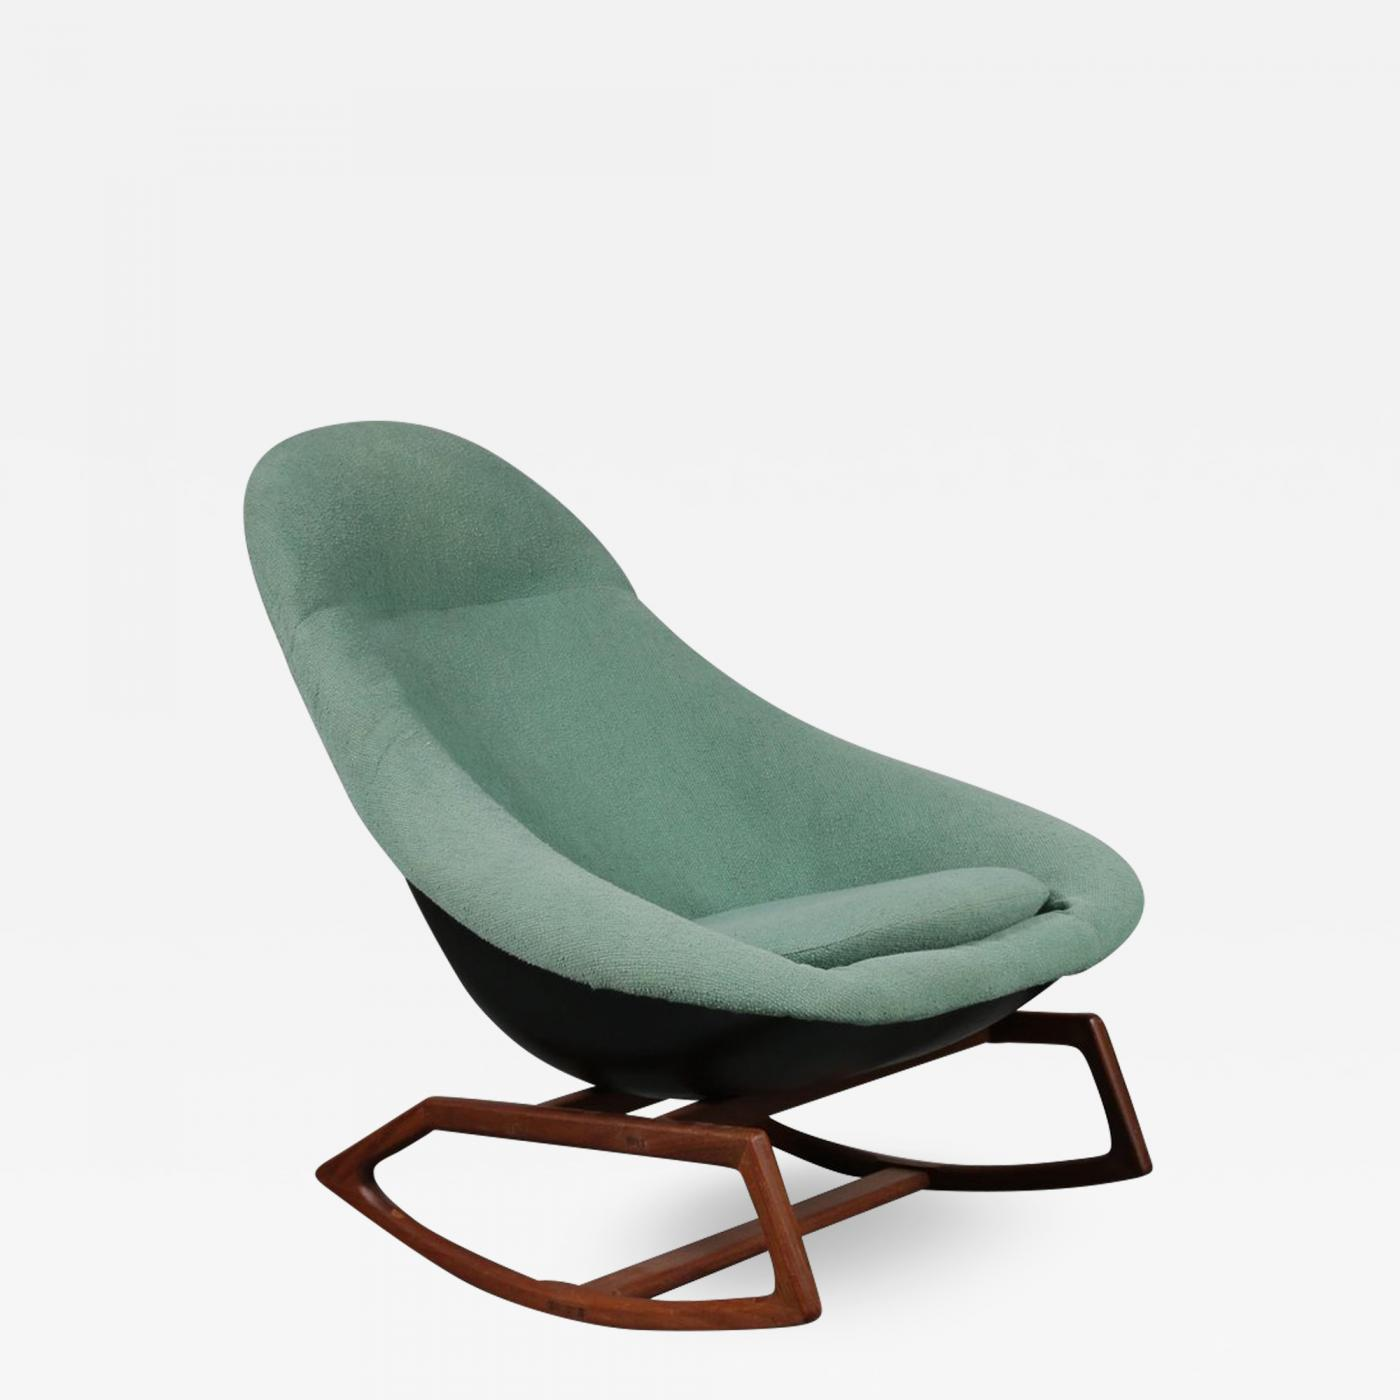 Rocking Chairs Walter S Chenery Walter S Chenery Gemini Rocking Chair For Lurashell Uk 1960